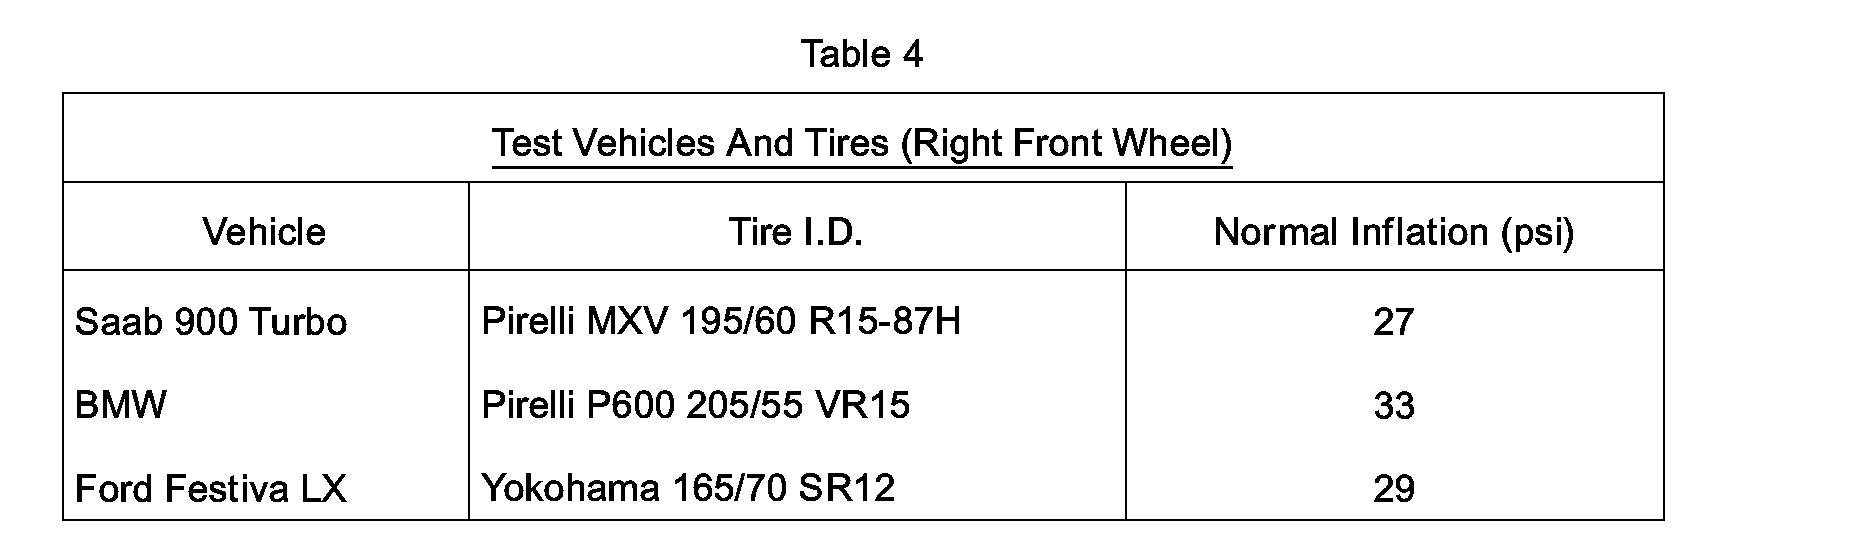 Ep0545641a2 Determining Pneumatic Tire Pressure And Or Vehicle Temperature Load Force 038 Other Sensors Figure Imgb0027